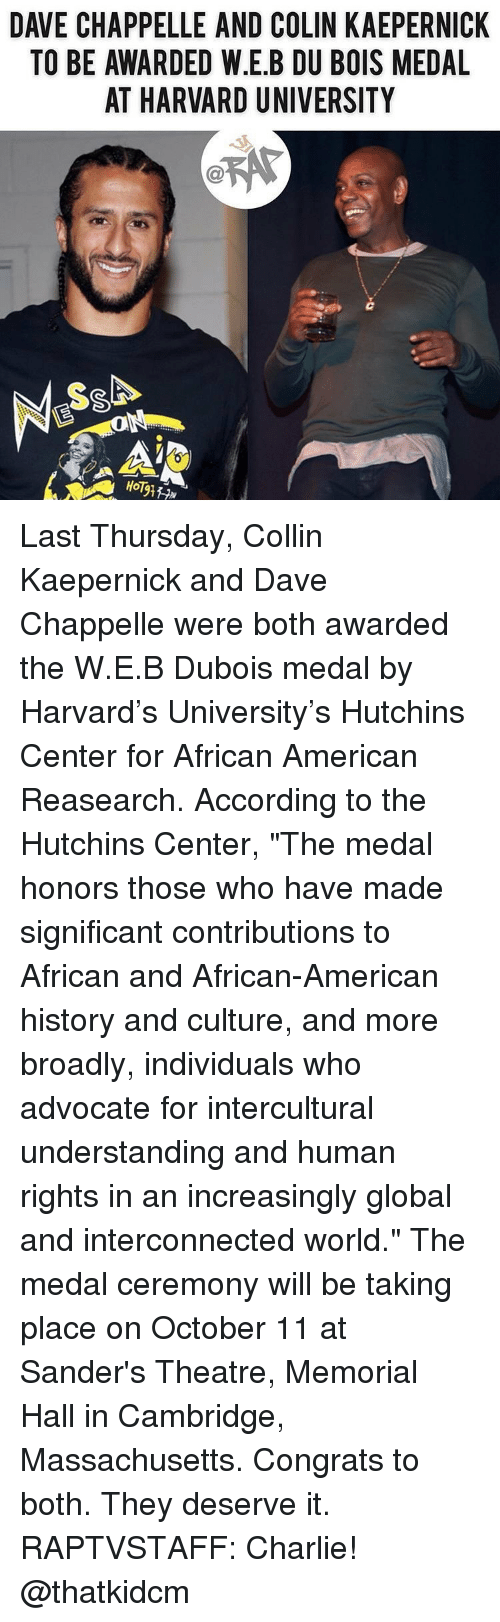 "Charlie, Colin Kaepernick, and Memes: DAVE CHAPPELLE AND COLIN KAEPERNICK  TO BE AWARDED W.E.B DU BOIS MEDAL  AT HARVARD UNIVERSITY  HoT Last Thursday, Collin Kaepernick and Dave Chappelle were both awarded the W.E.B Dubois medal by Harvard's University's Hutchins Center for African American Reasearch. According to the Hutchins Center, ""The medal honors those who have made significant contributions to African and African-American history and culture, and more broadly, individuals who advocate for intercultural understanding and human rights in an increasingly global and interconnected world."" The medal ceremony will be taking place on October 11 at Sander's Theatre, Memorial Hall in Cambridge, Massachusetts. Congrats to both. They deserve it. RAPTVSTAFF: Charlie! @thatkidcm"